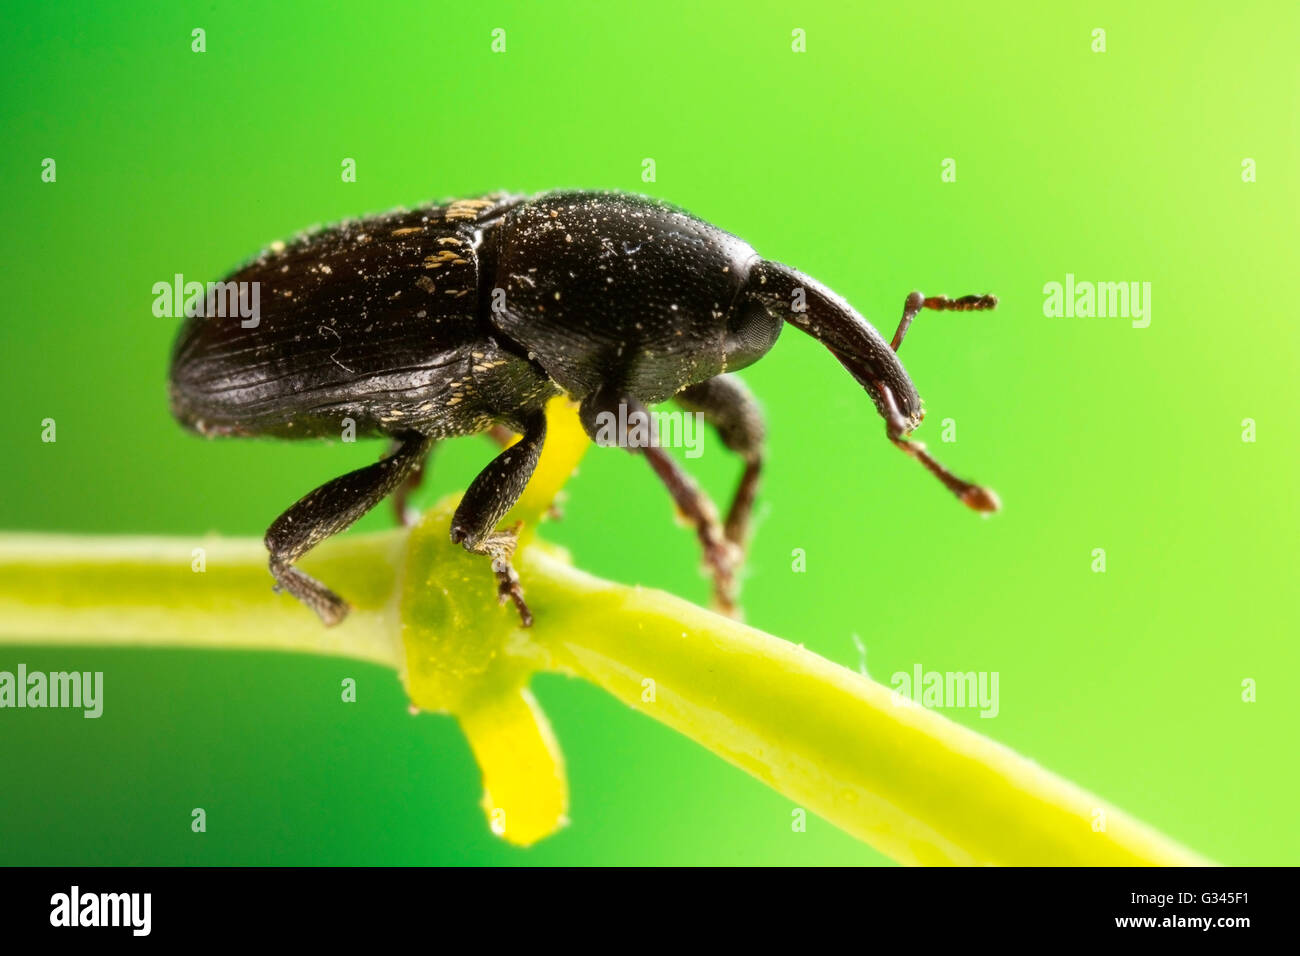 Black Weevil Beetle macro photograph - Stock Image